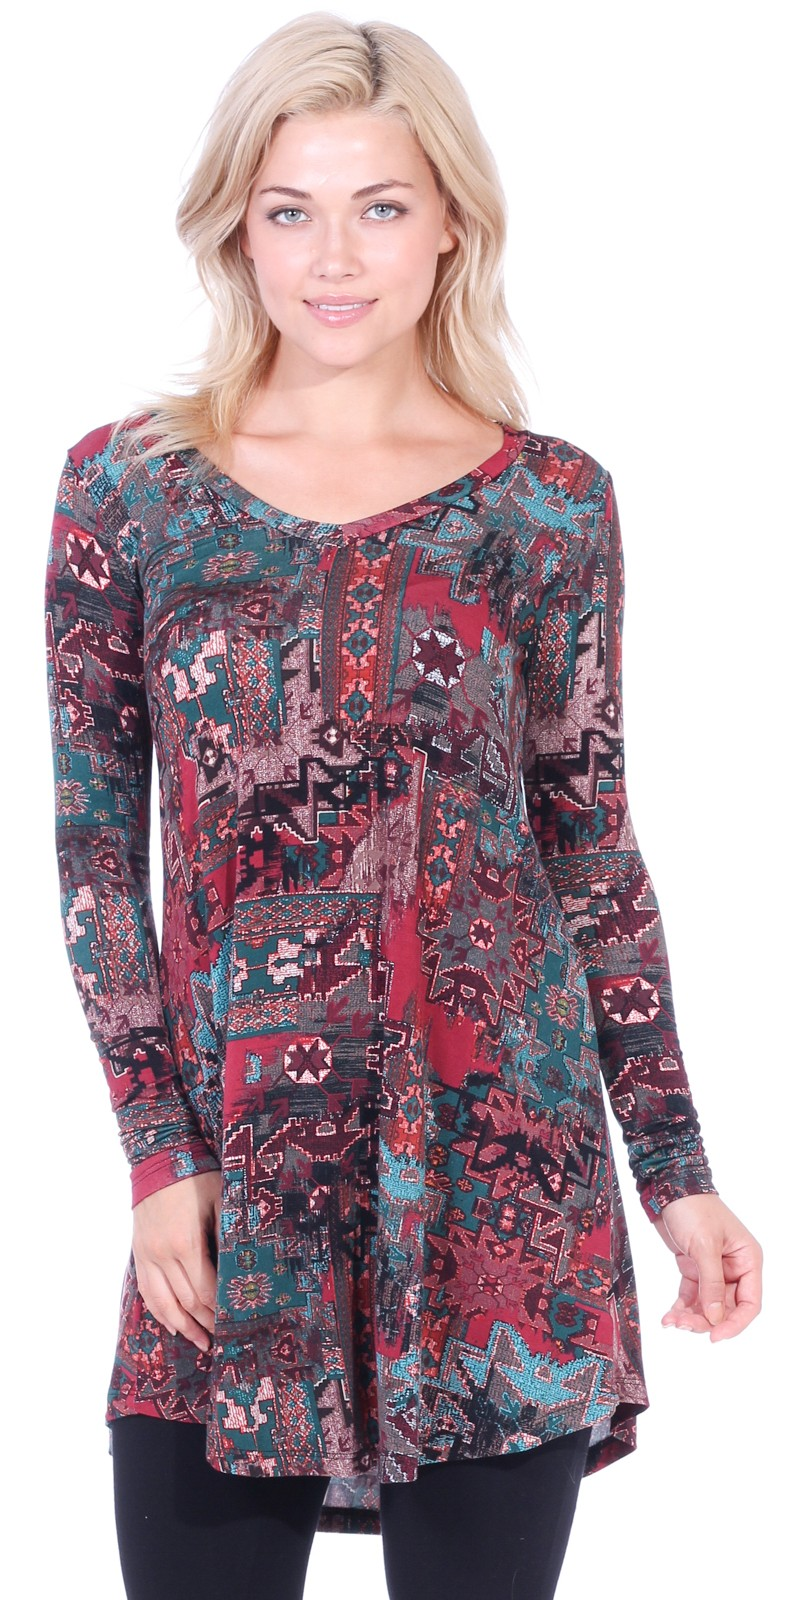 Women's Tunic Tops For Leggings - Long Sleeve Vneck Shirt - Regular and Plus Size - Made in USA - ST17